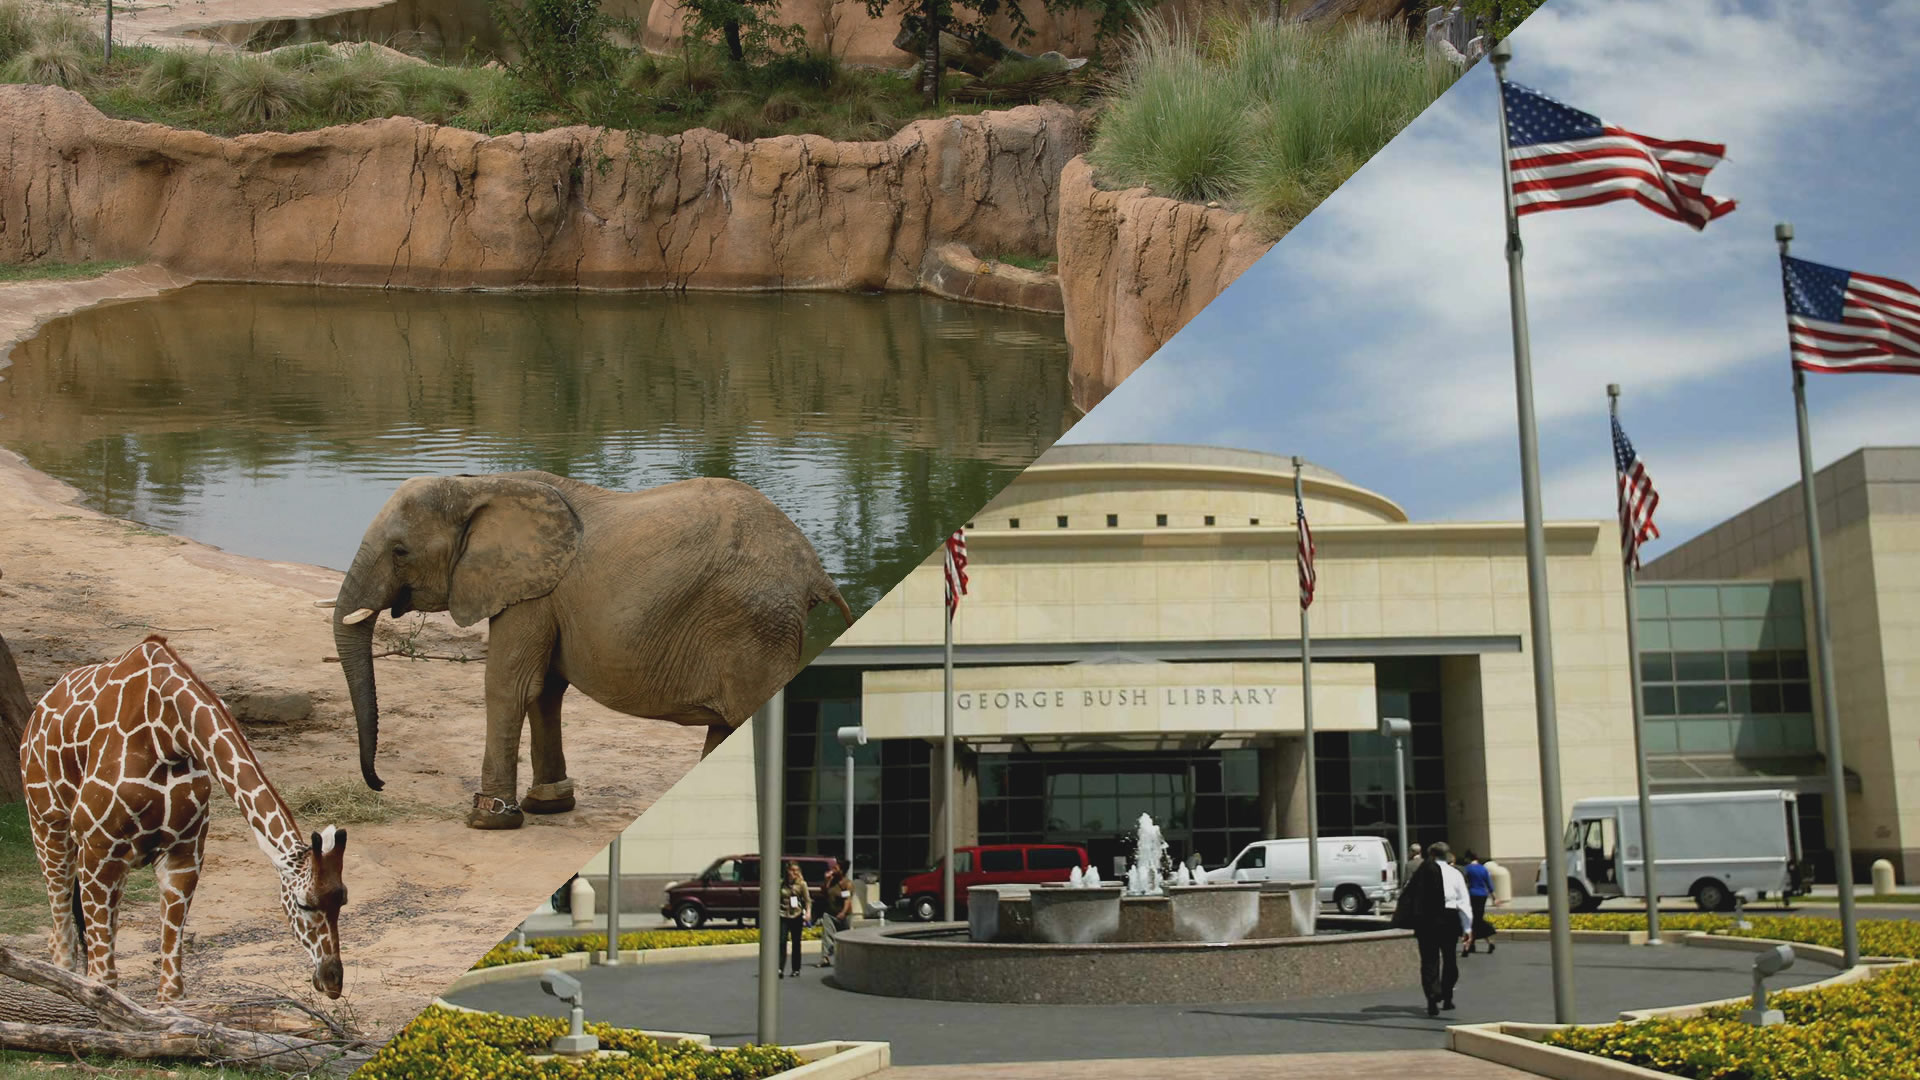 The world-class, 106-acre Dallas Zoo is the largest in Texas and features many rare and endangered species.